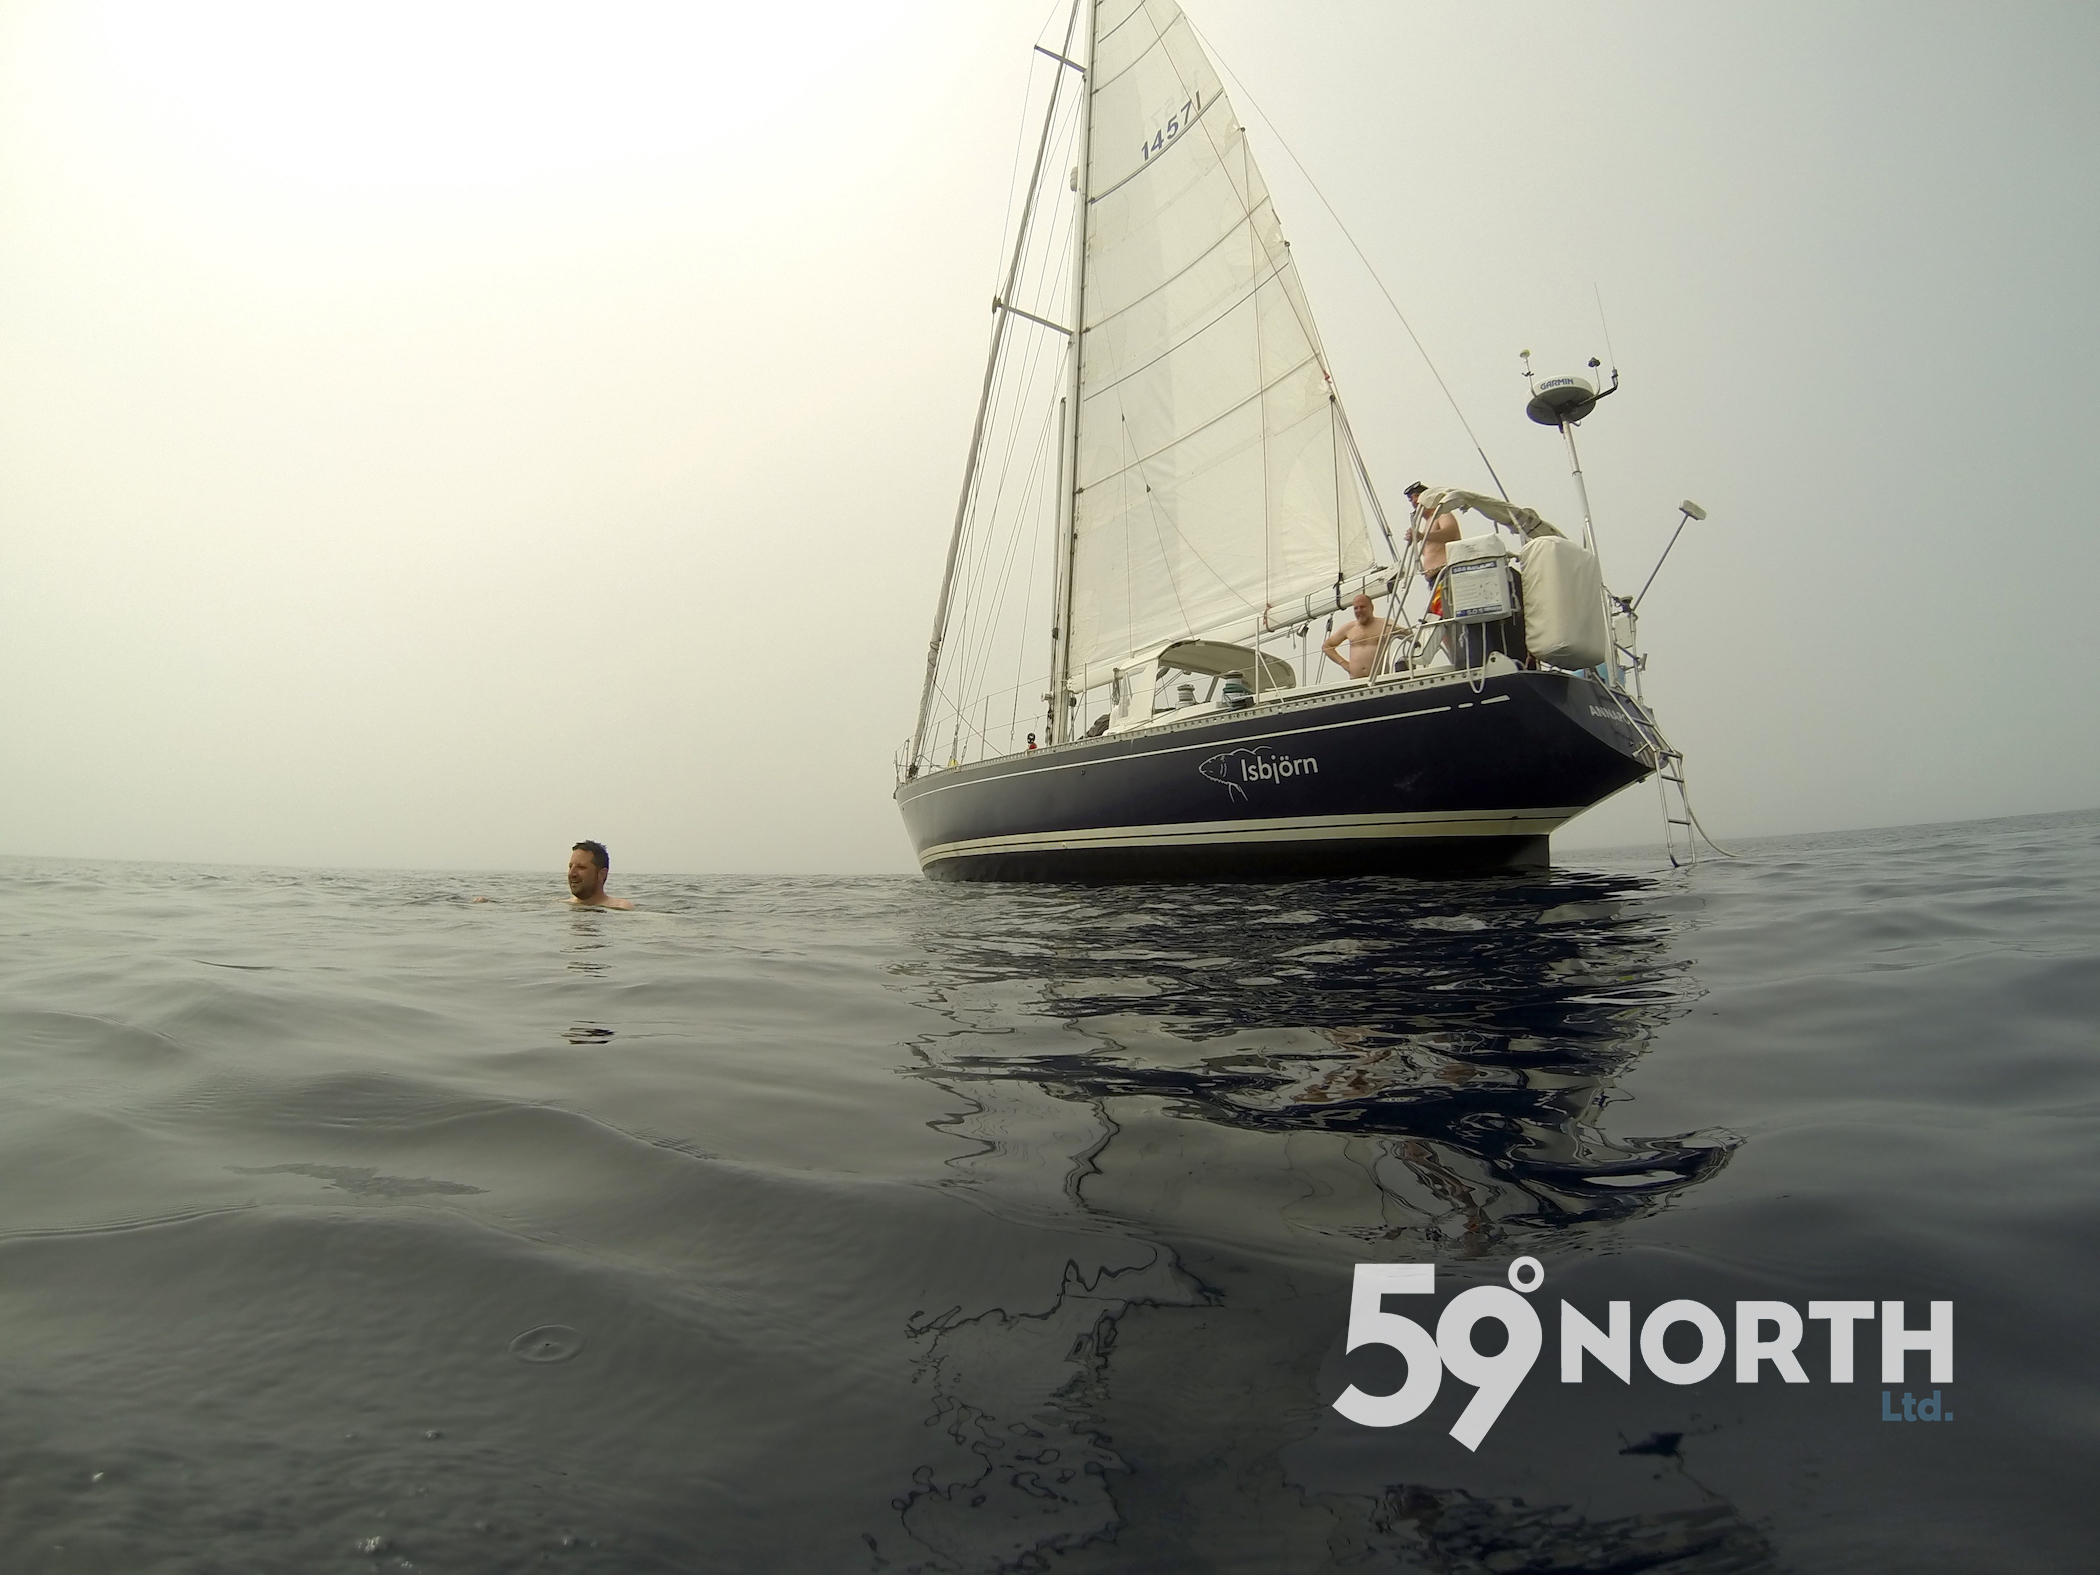 Foggy swim on the way from St. Johns to Lunenburg! Just after the swim, the fog lifted, the wind picked up and we sailed under spiknnaker all the way back to Lunenburg. Aug. 2016